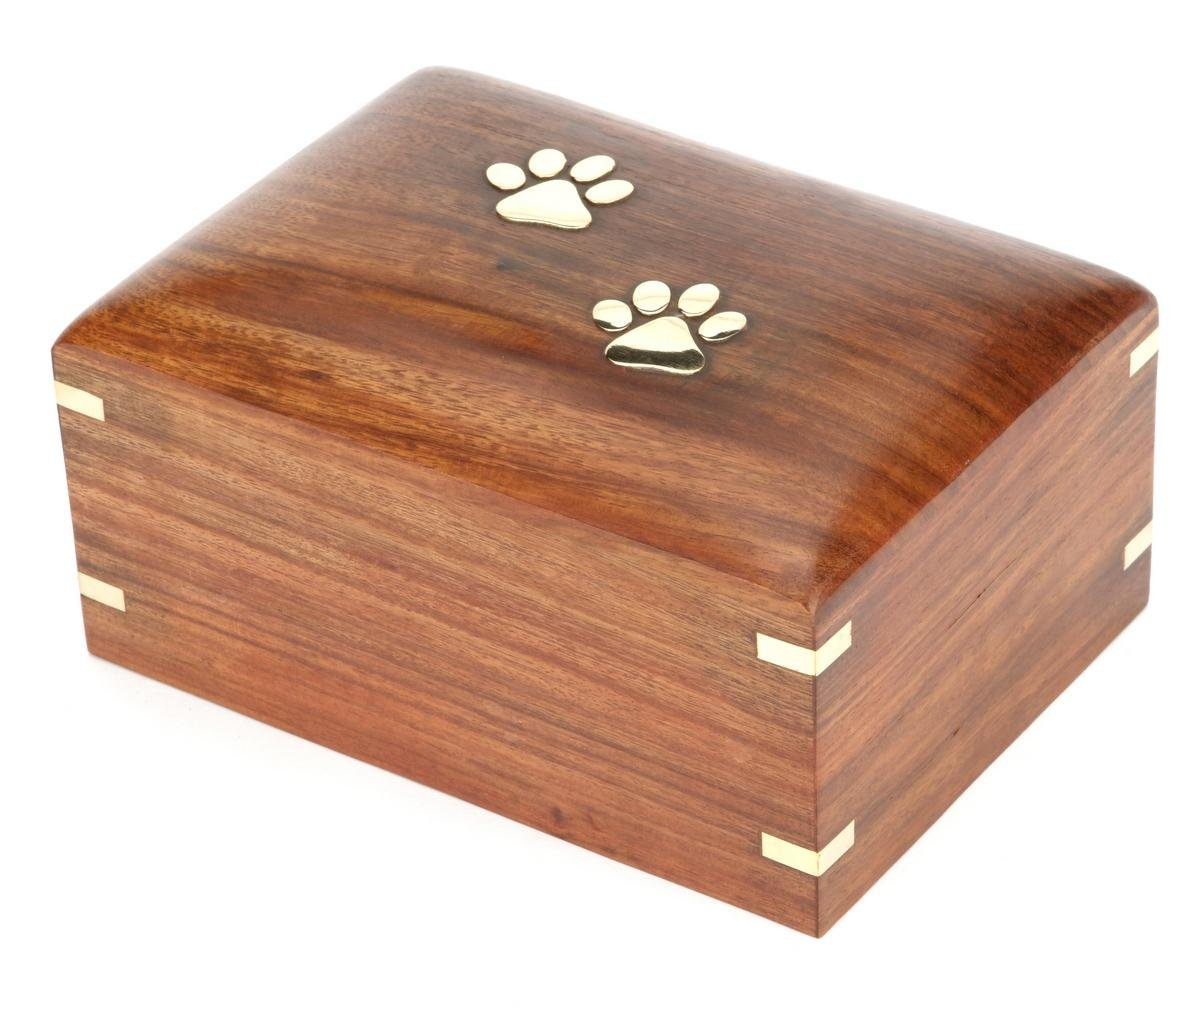 Hind Handicrafts Rosewood Pet Urn Peaceful Pet Memorial Keepsake Urn, Photo Box Cremation Urn for Dogs,Cats, Keepsake Urns for Ashes, Wooden Box Urn (Small : 6'' x 4'' x 3'' - 45lbs or 20kg)